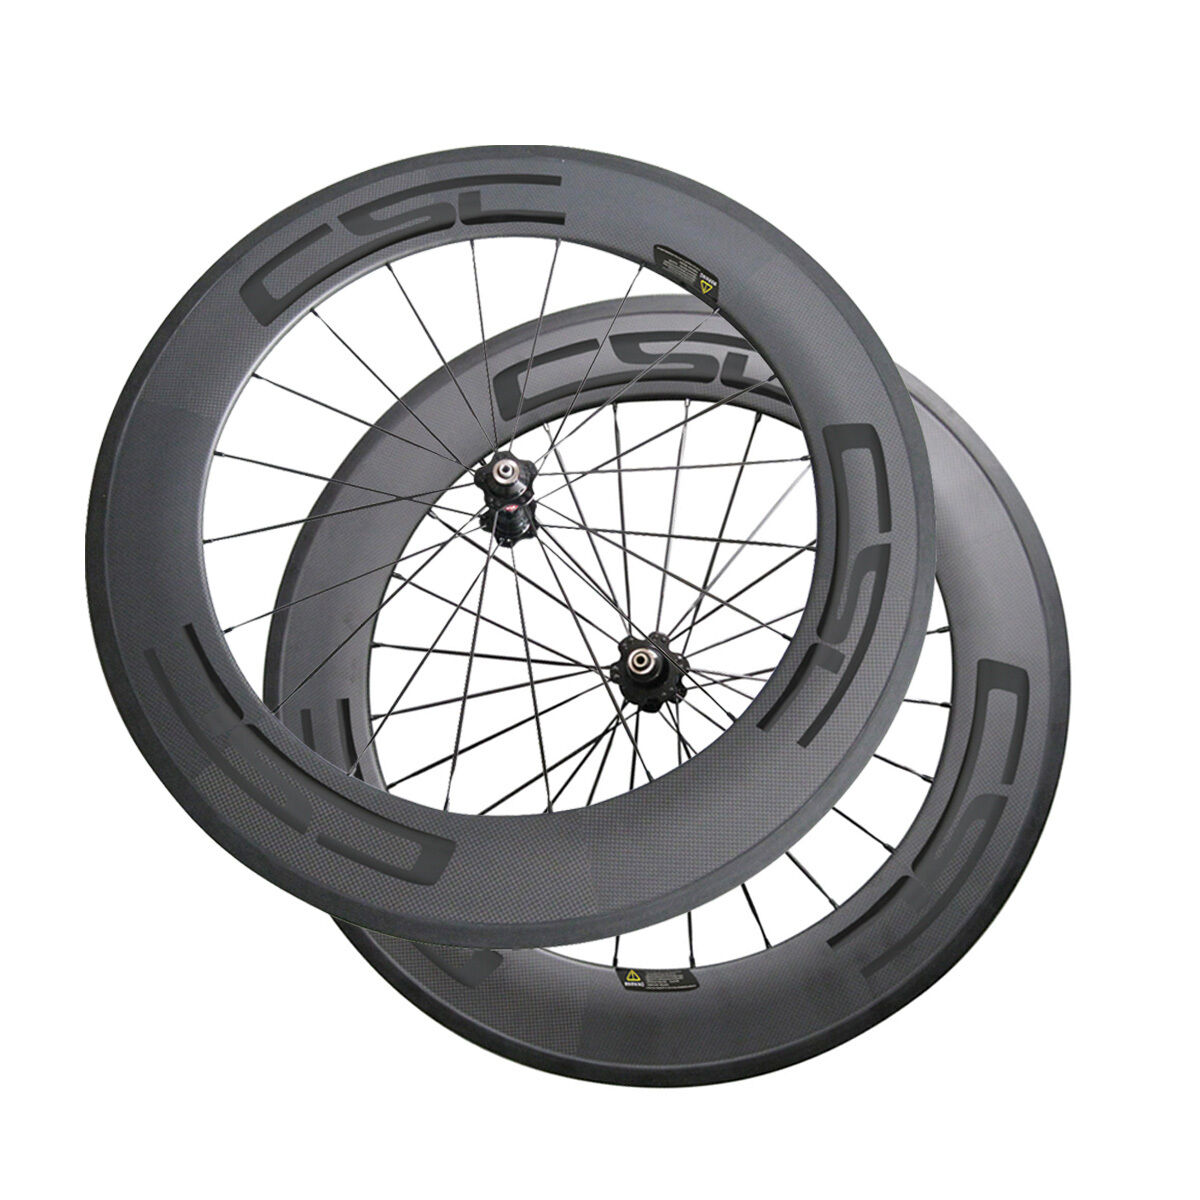 CSC Bicycle wheels 88mm Clincher carbon bike wheelset  23mm, 25mm width